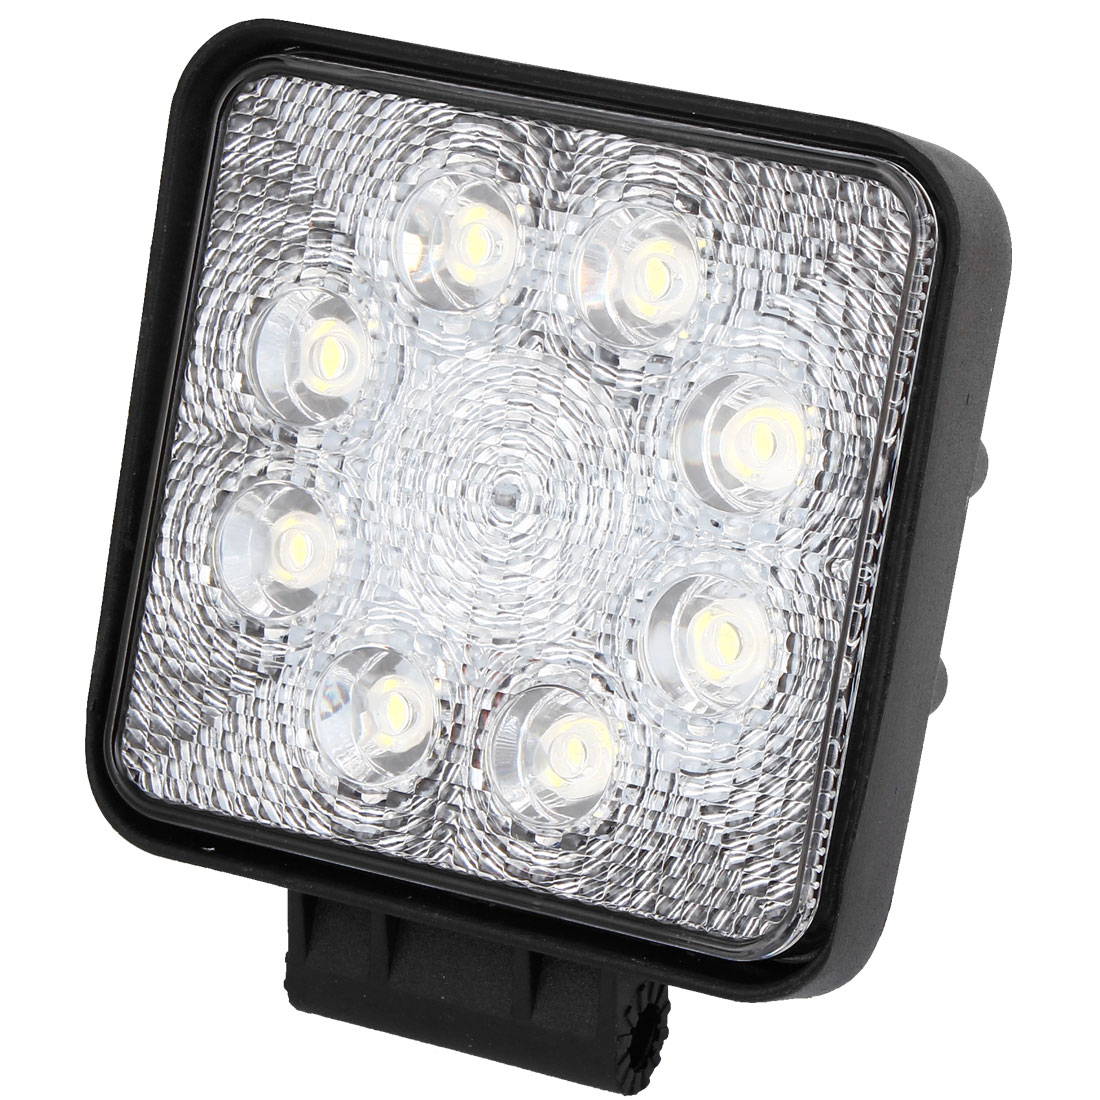 Black Metal Shell Square 24W White 8 LED Flood Beam Work Light Driving Lamp Offroad SUV ATV